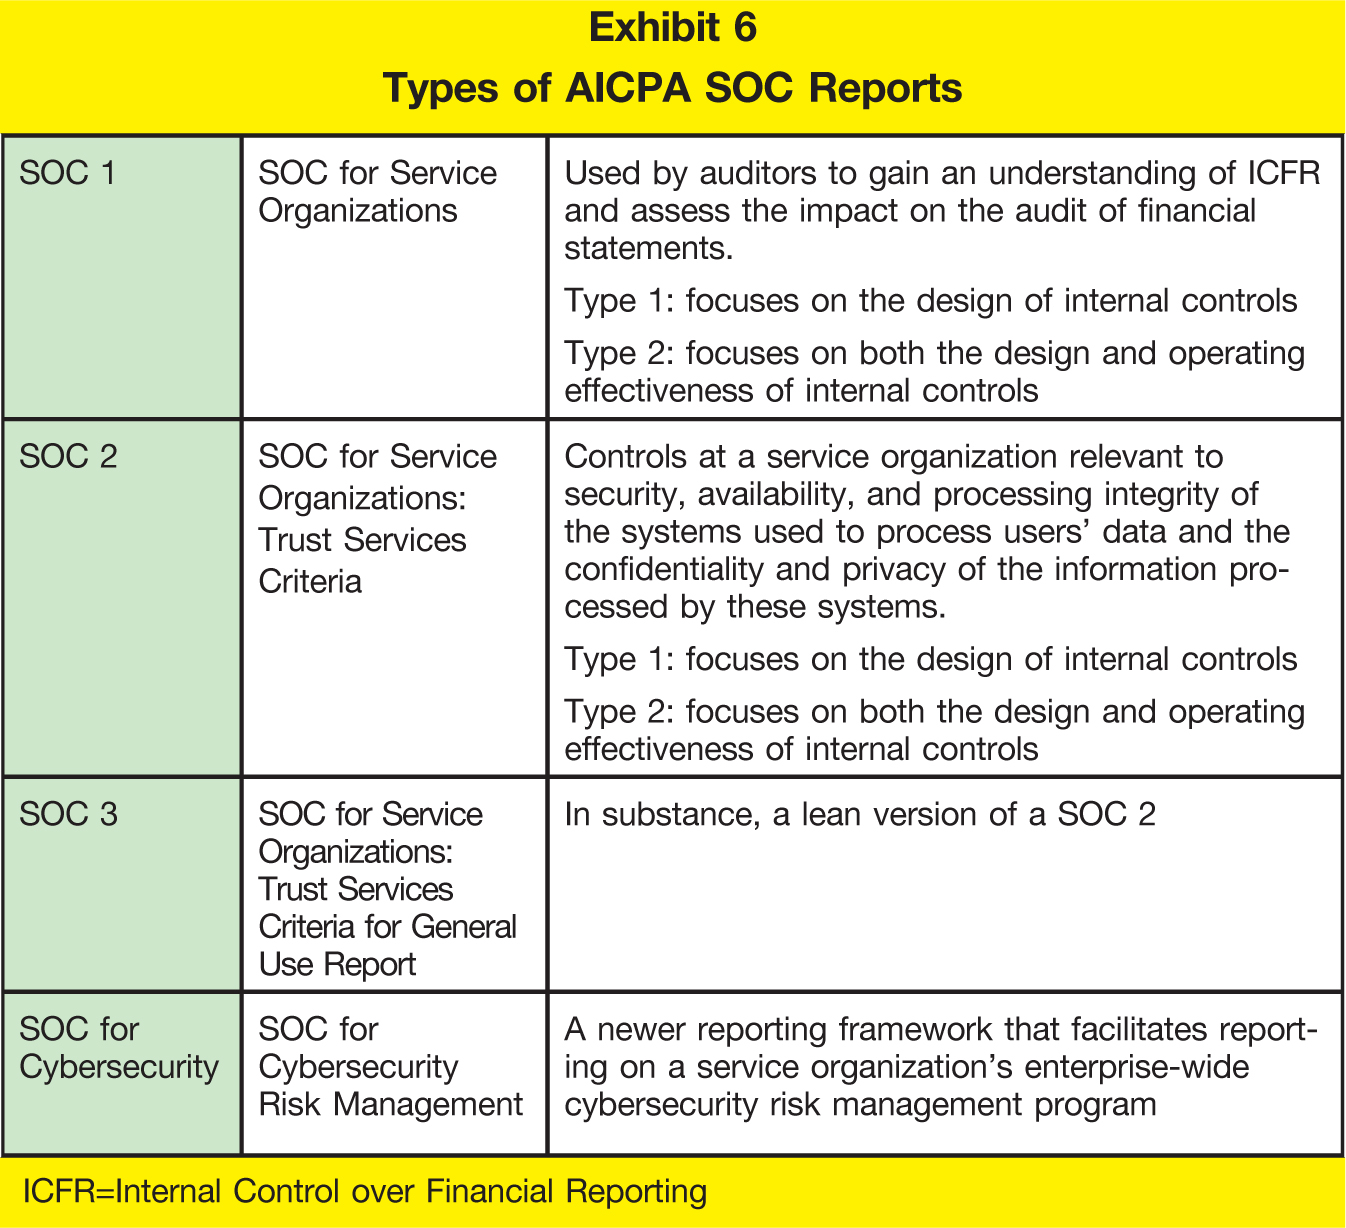 SOC 1; SOC for Service Organizations; Used by auditors to gain an understanding of ICFR and assess the impact on the audit of financial statements. Type 1: focuses on the design of internal controls Type 2: focuses on both the design and operating effectiveness of internal controls SOC 2; SOC for Service Organizations: Trust Services Criteria; Controls at a service organization relevant to security, availability, and processing integrity of the systems used to process users' data and the confidentiality and privacy of the information processed by these systems. Type 1: focuses on the design of internal controls Type 2: focuses on both the design and operating effectiveness of internal controls SOC 3; SOC for Service Organizations: Trust Services Criteria for General Use Report; In substance, a lean version of a SOC 2 SOC for Cybersecurity; SOC for Cybersecurity Risk Management; A newer reporting framework that facilitates reporting on a service organization's enterprise-wide cybersecurity risk management program ICFR =Internal Control over Financial Reporting